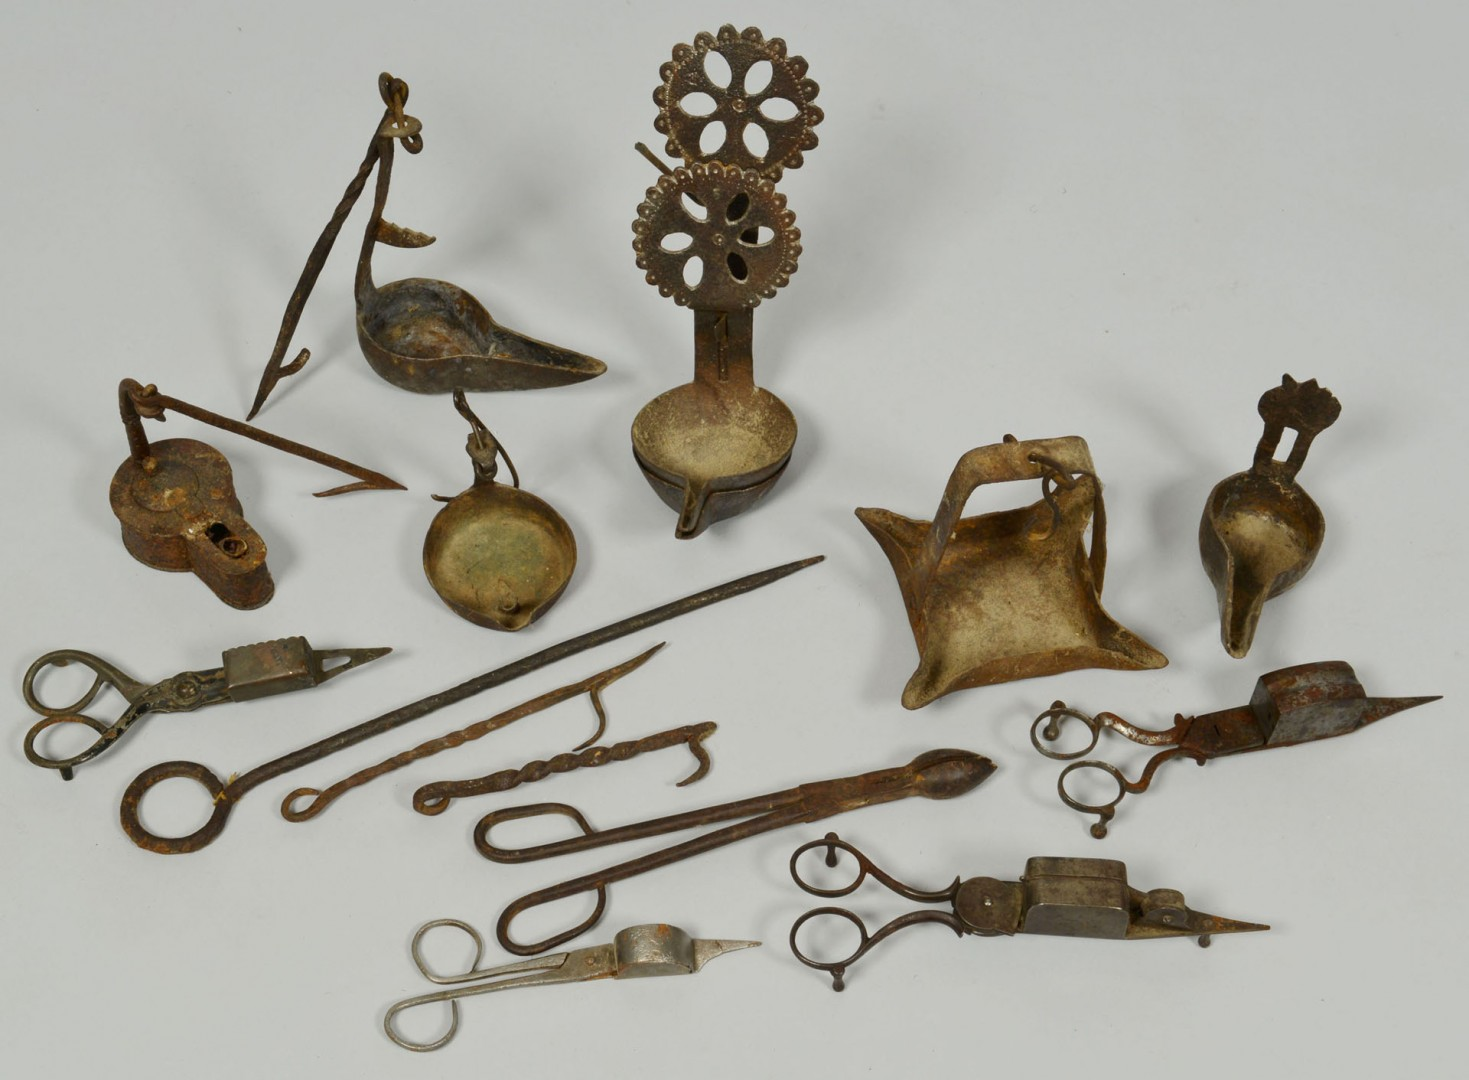 Grouping of Early Iron Lighting Related Items